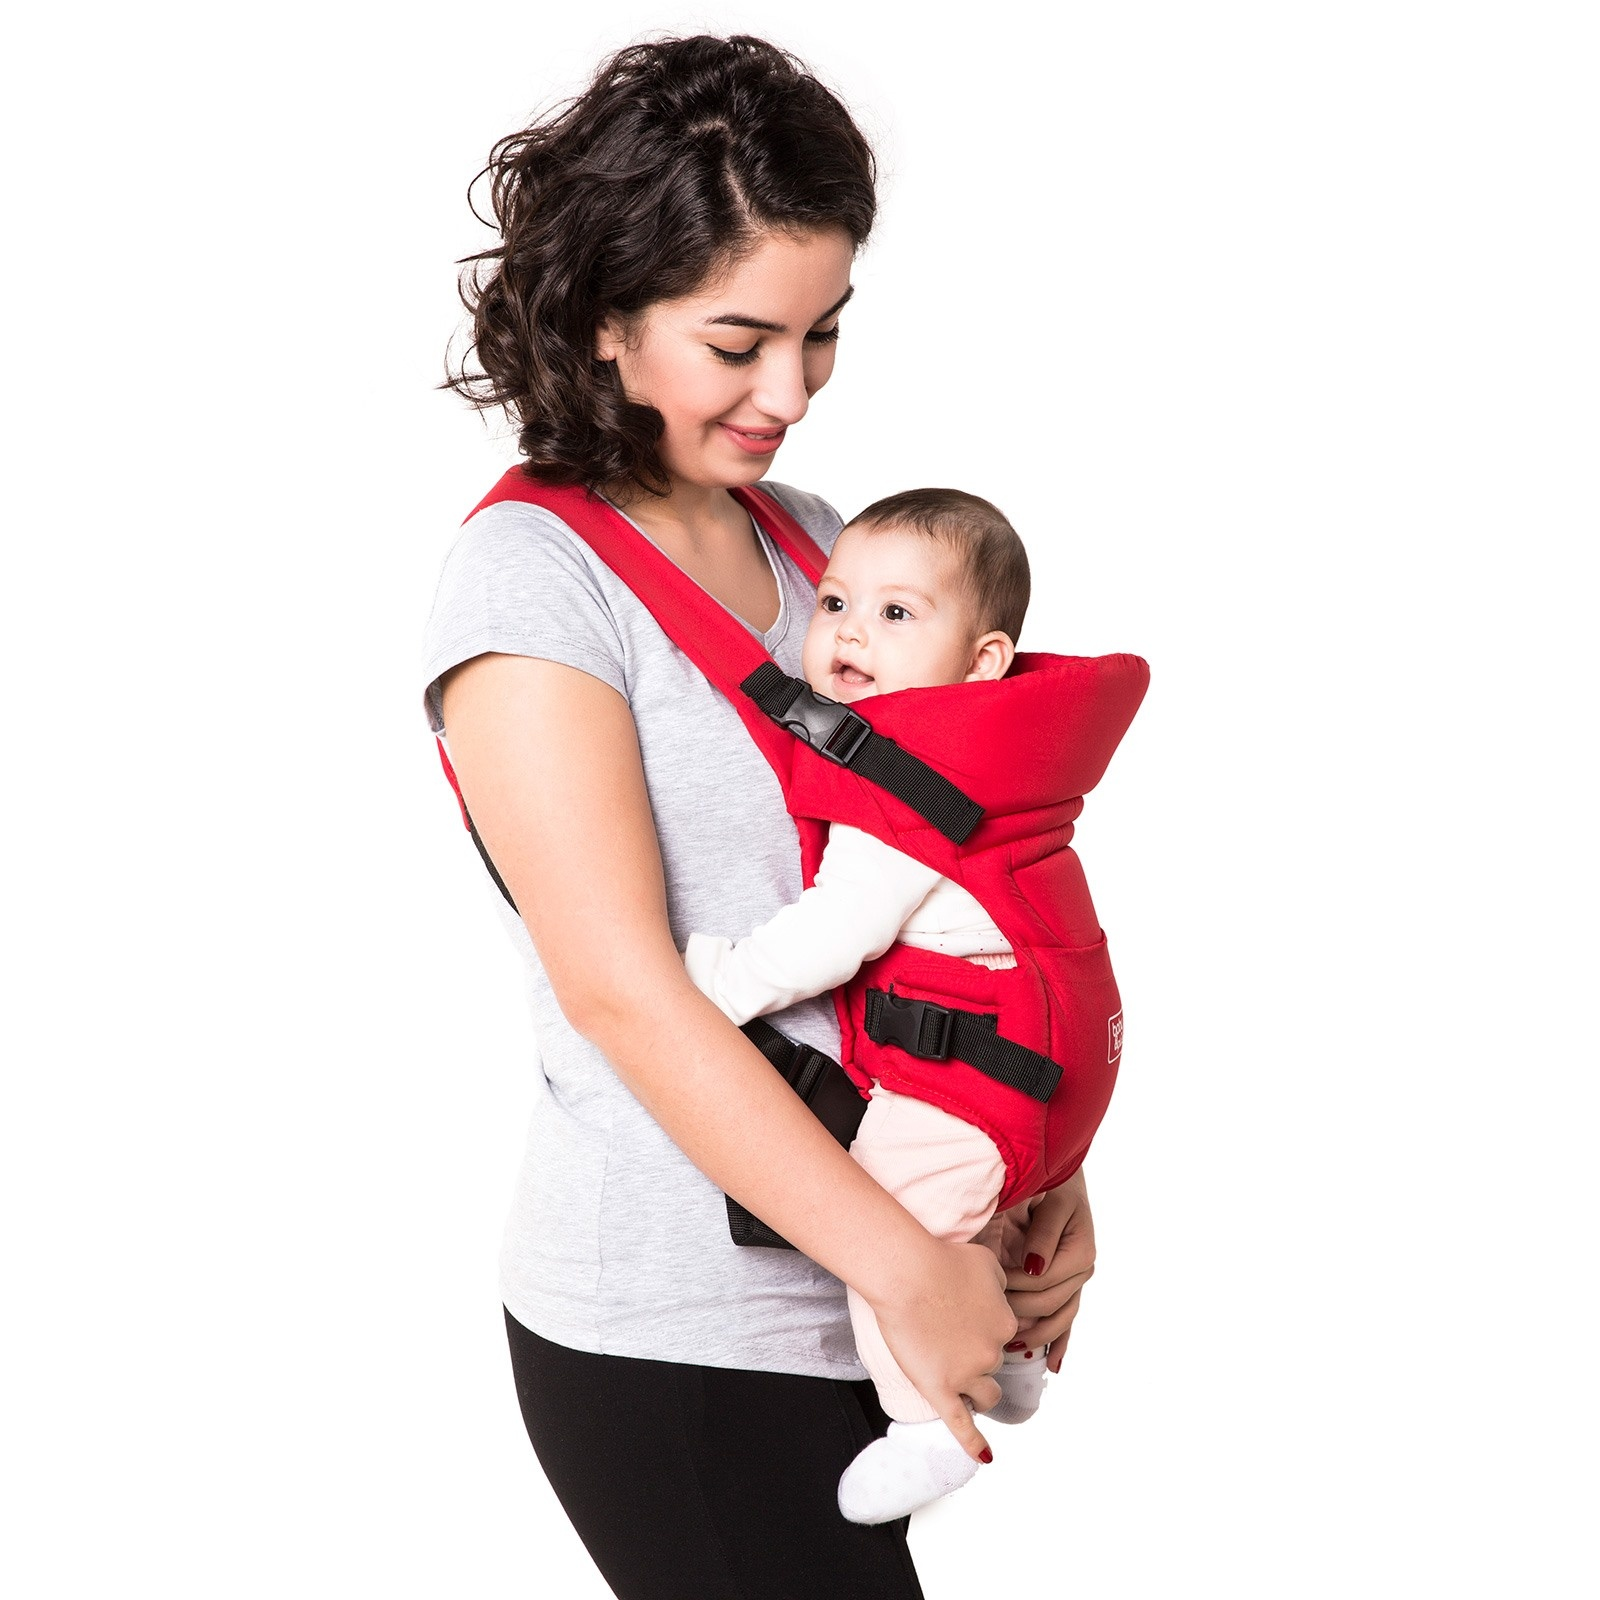 Ebebek Baby&plus Balance Comfortable Baby Kangaroo Carrier Ergonomic Baby Carrier Sling Hipseat Baby Carries Sling For Newborns